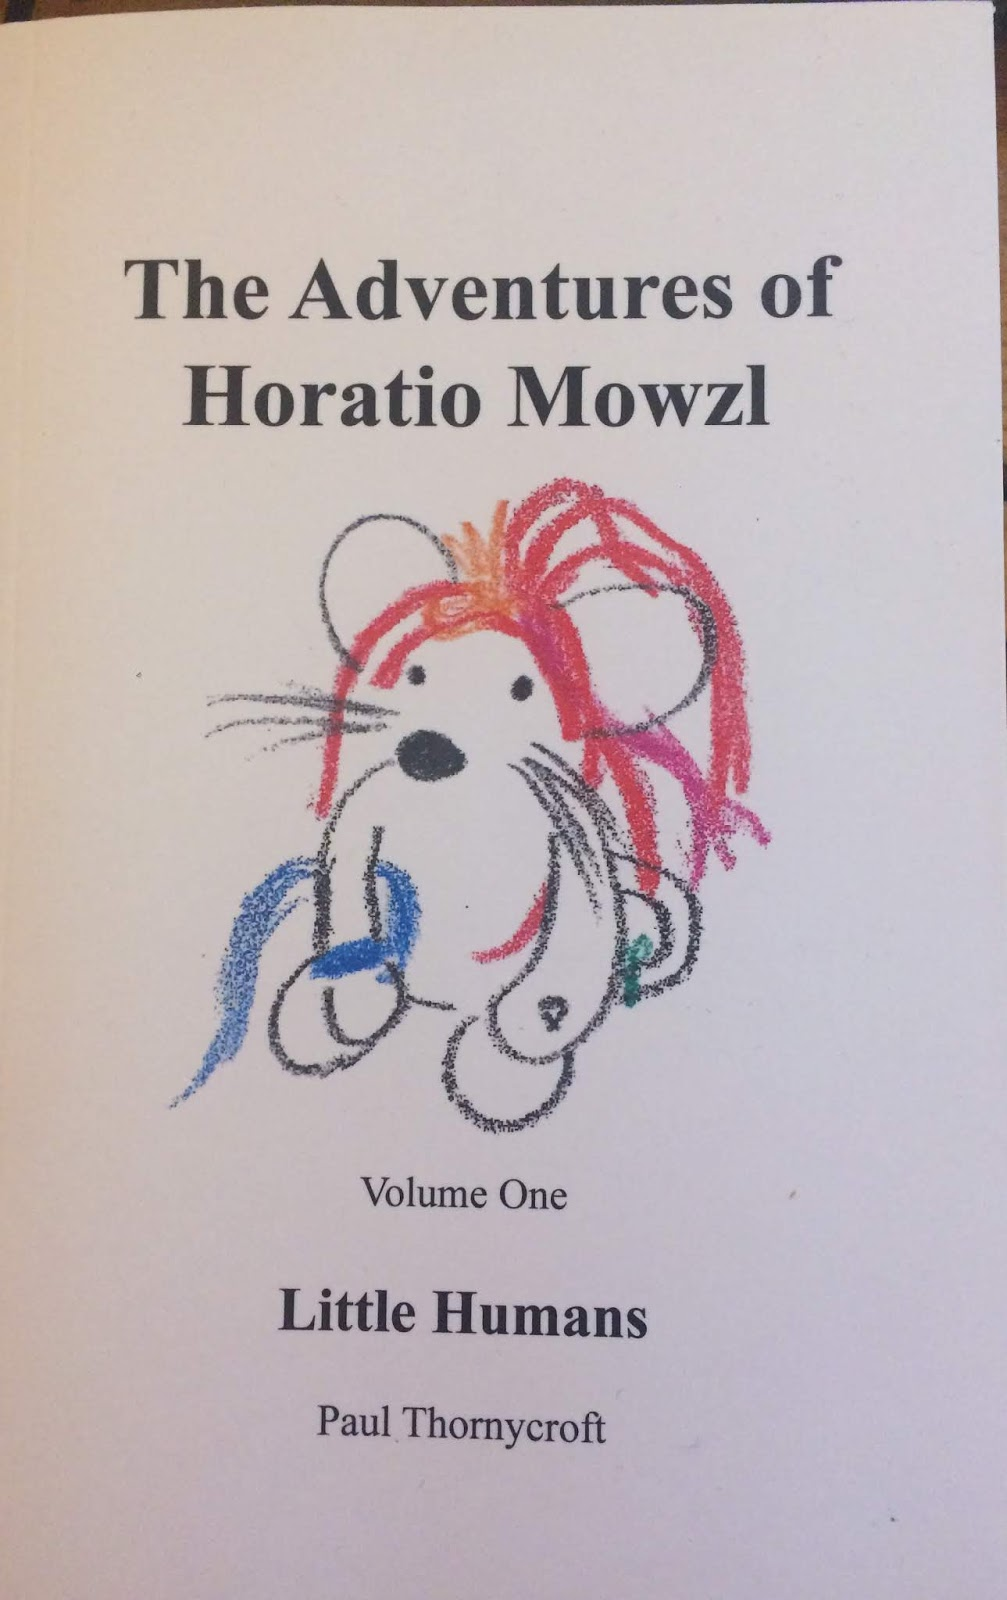 A must read for children – The Adventure of Horatio Mowzl